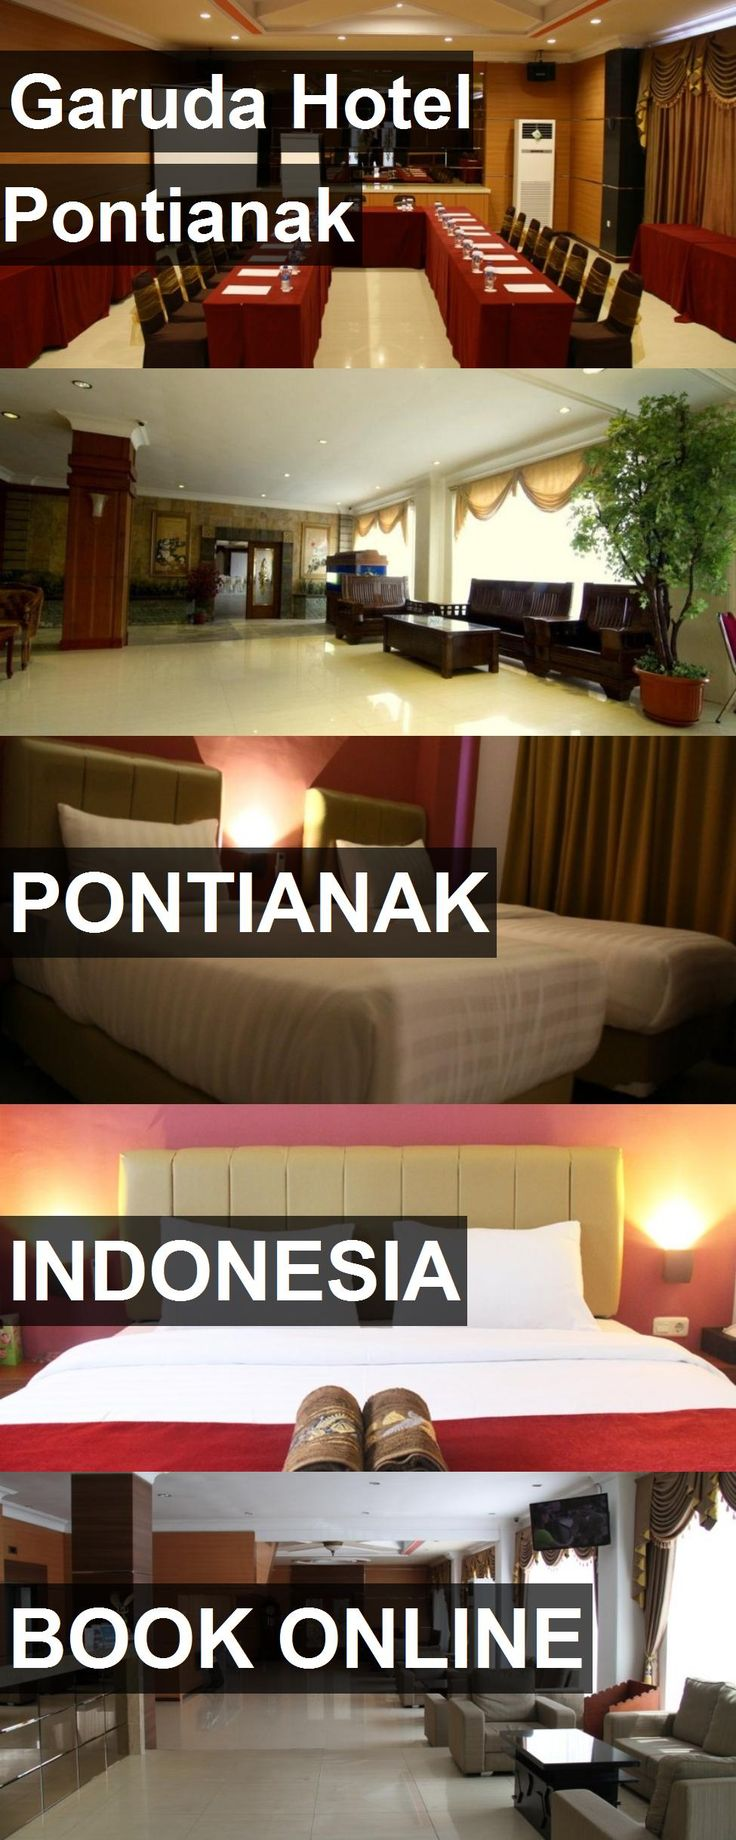 Garuda Hotel Pontianak in Pontianak, Indonesia. For more information, photos, reviews and best prices please follow the link. #Indonesia #Pontianak #travel #vacation #hotel